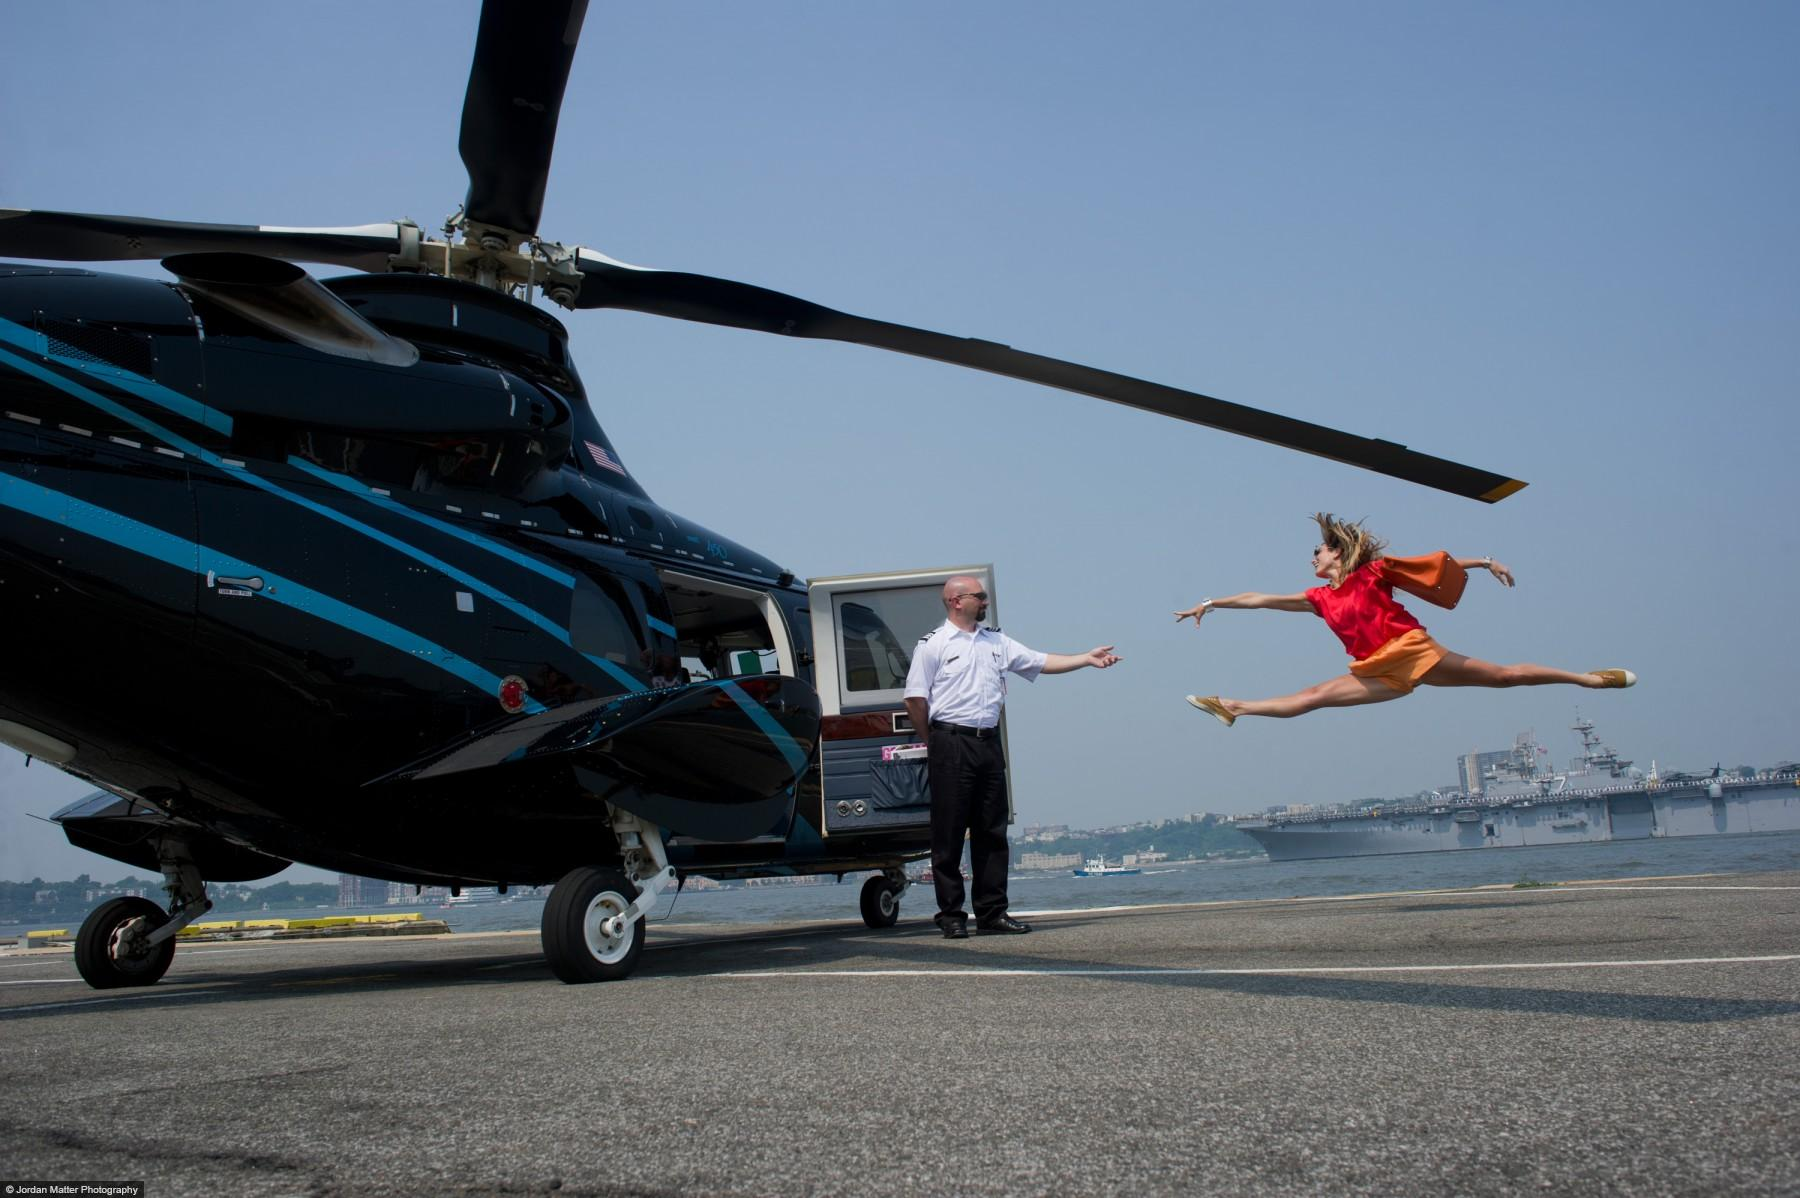 Dancers-Among-Us-VIP-Heliport-Marcella-Guarino